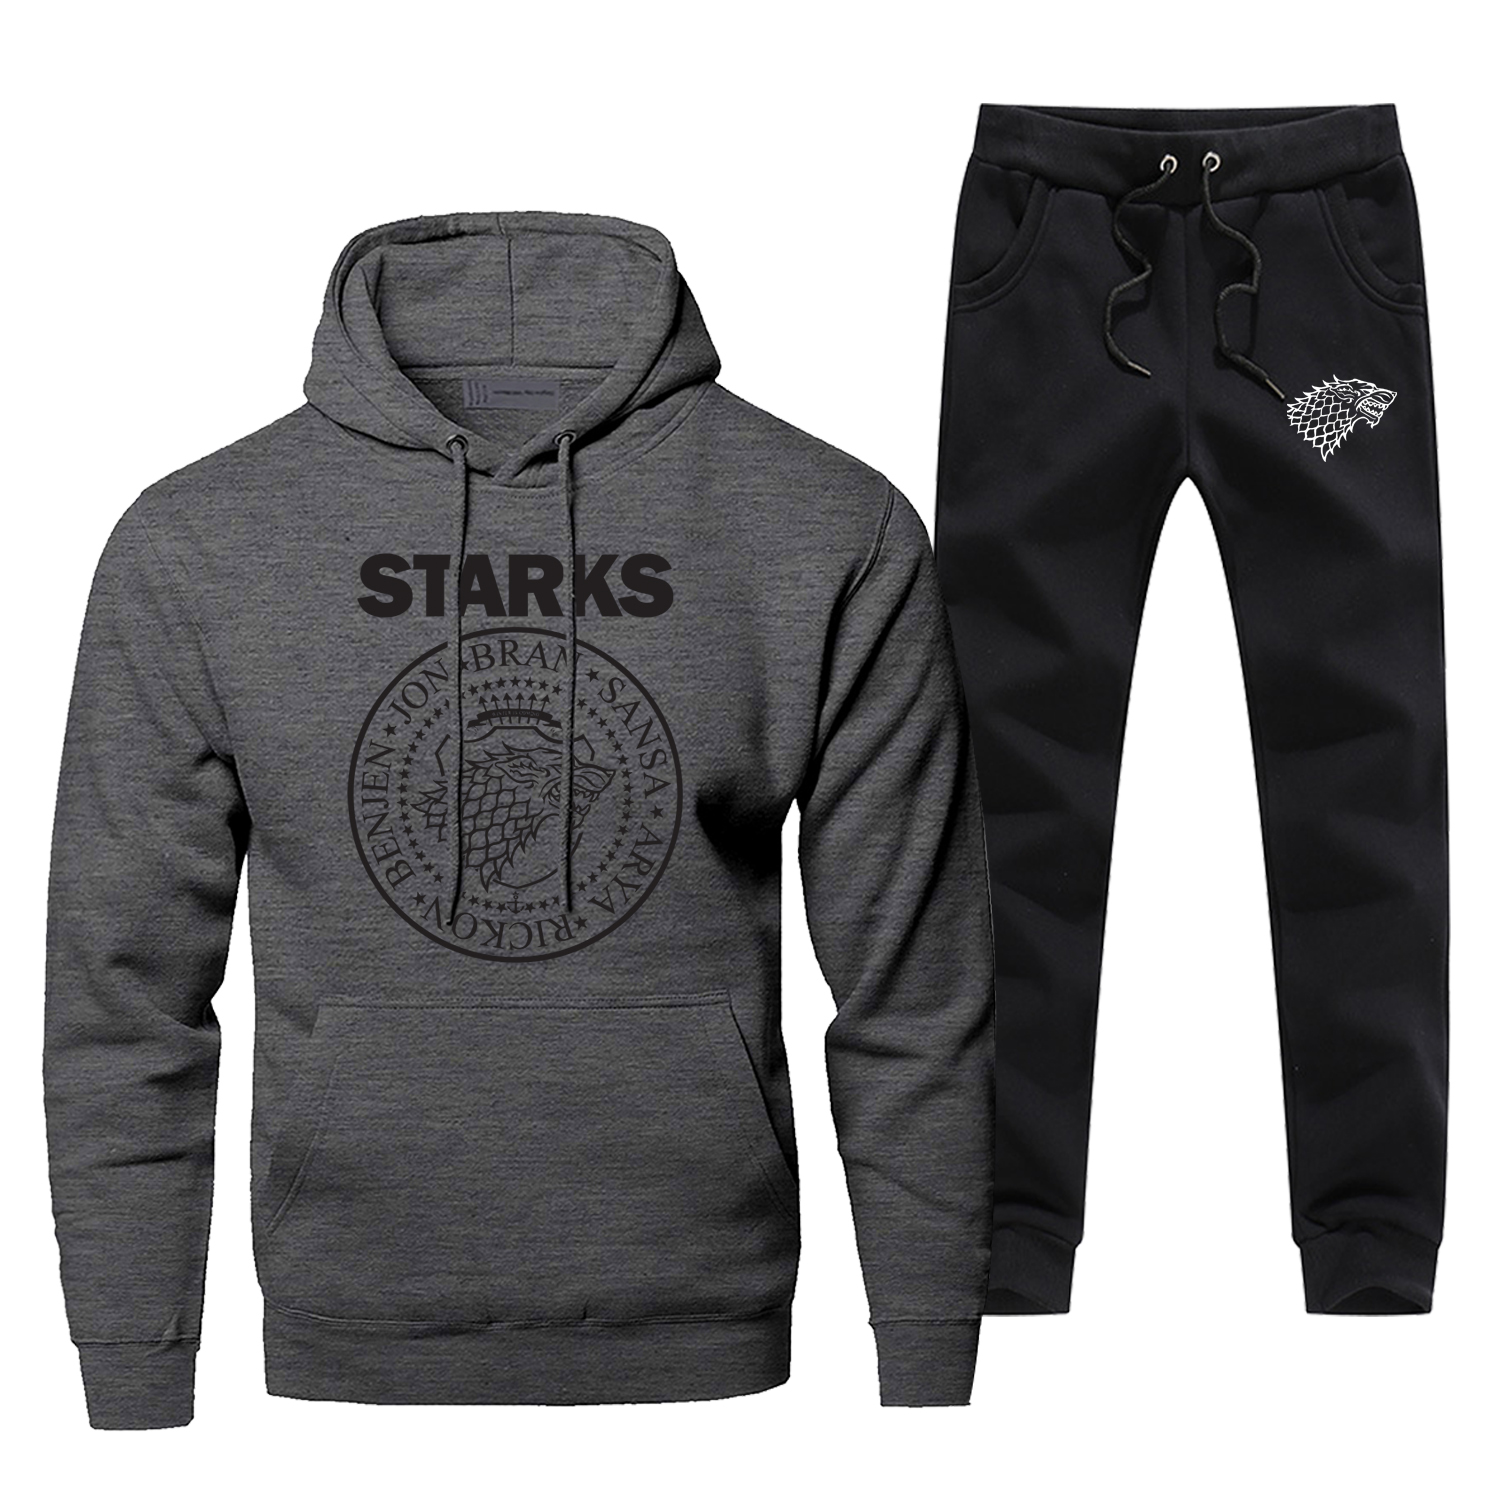 Game Of Thrones Tracksuit  House Stark Hoodie Pants Sets Men Fashion Sweatshirt Mens Fleece Sportswear Harajuku Streetwear